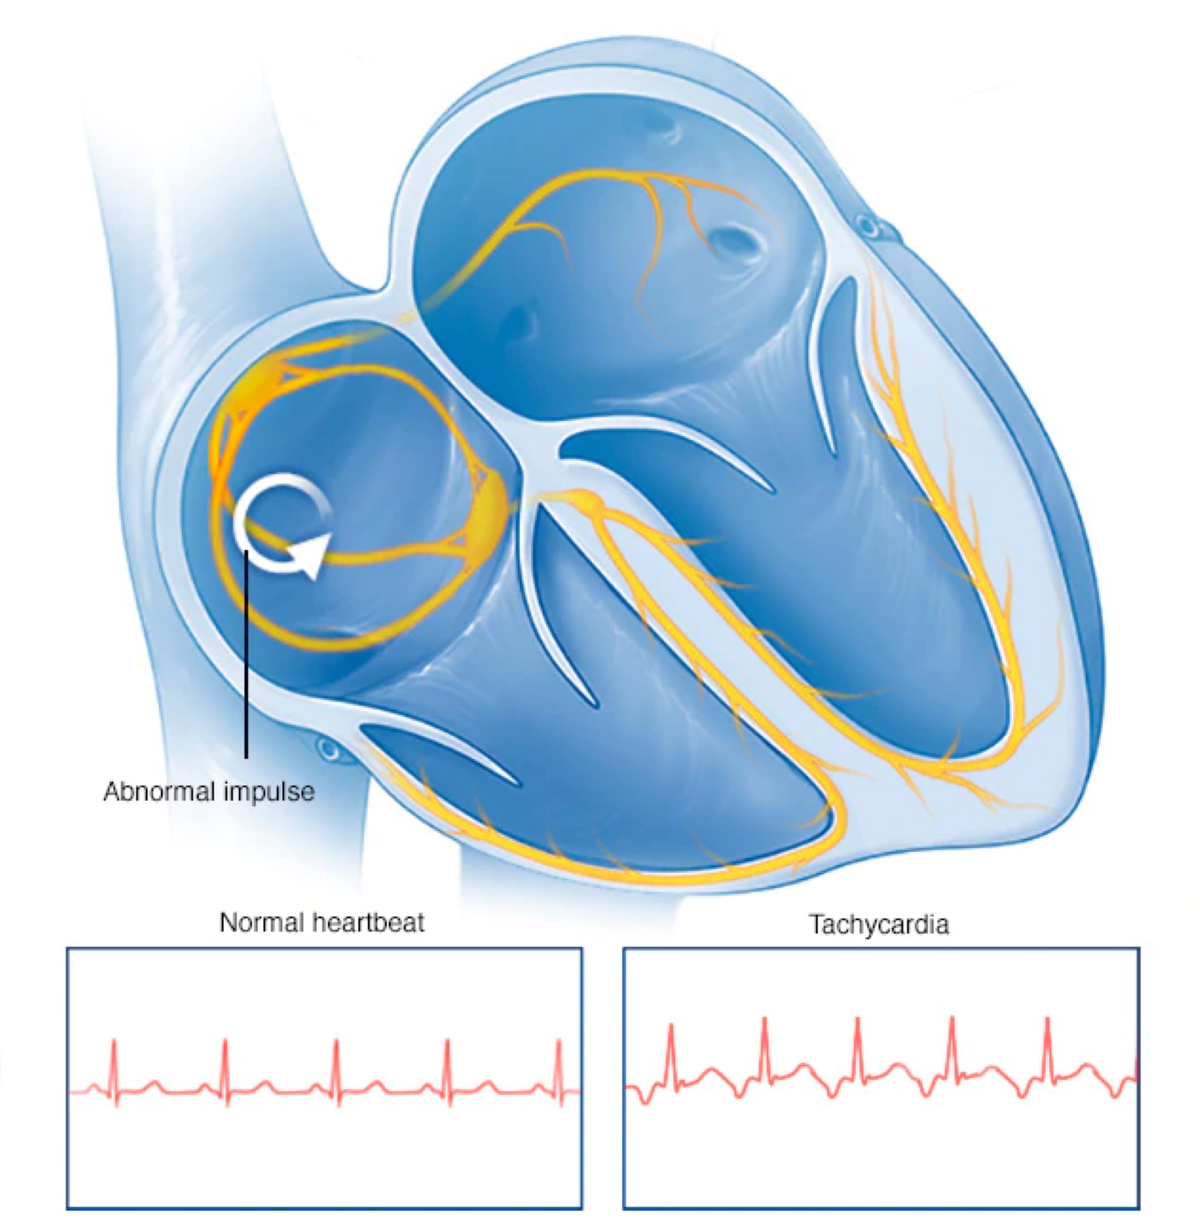 Tachycardia - Comparison between Normal and Tachycardia Heart Beat Graphics